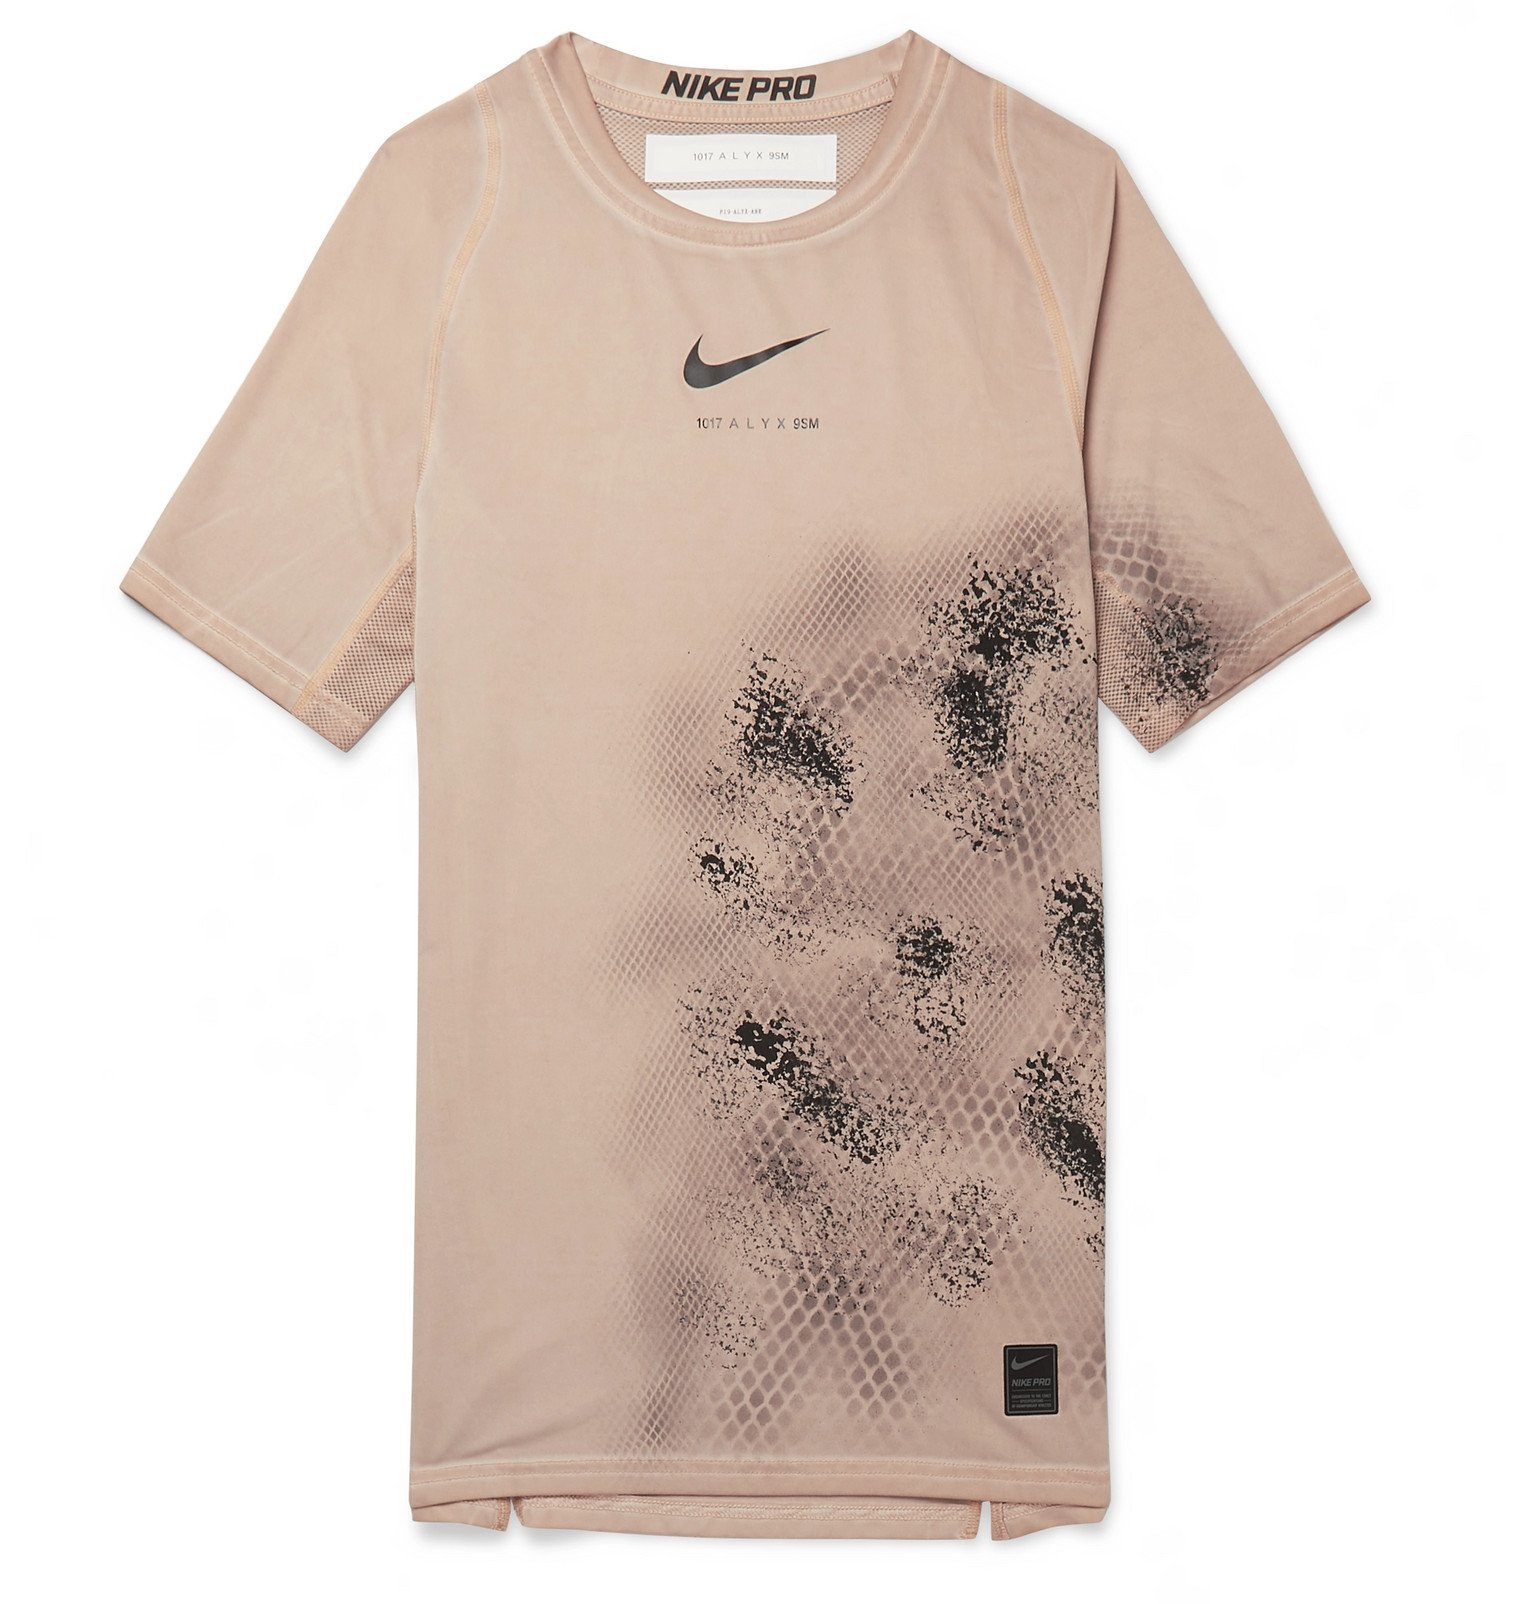 1017 ALYX 9SM - Nike Compression Printed Mesh-Panelled Stretch-Jersey T-Shirt - Neutrals